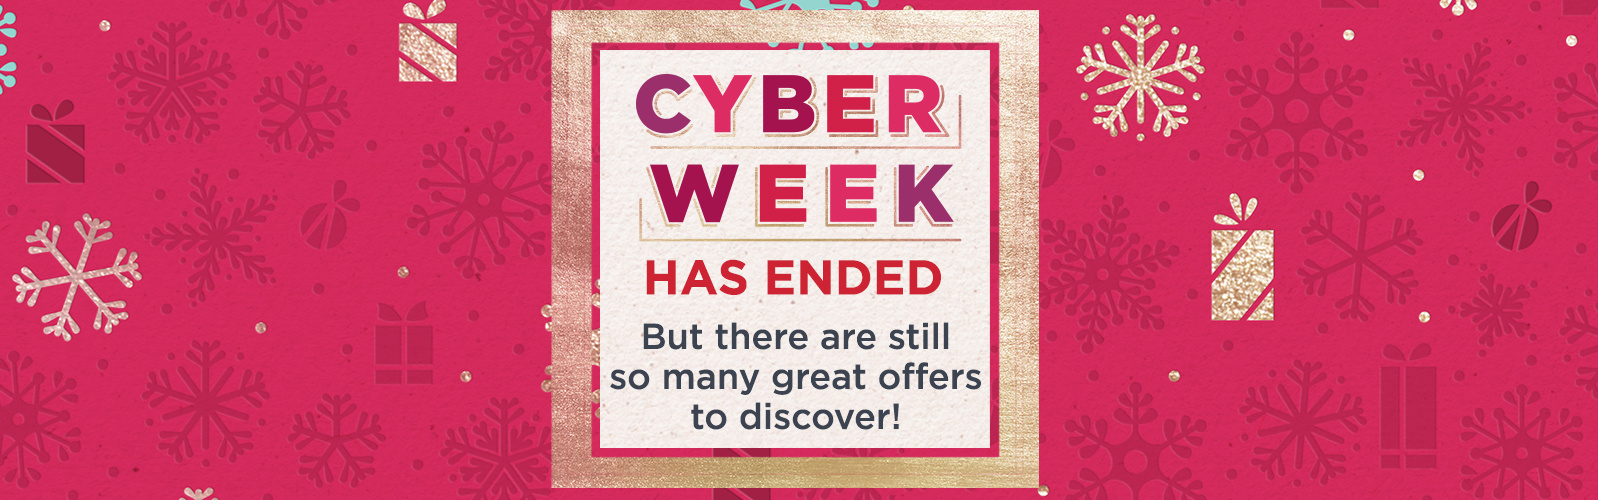 Cyber Week Has Ended  But there are still so many great  offers to discover!